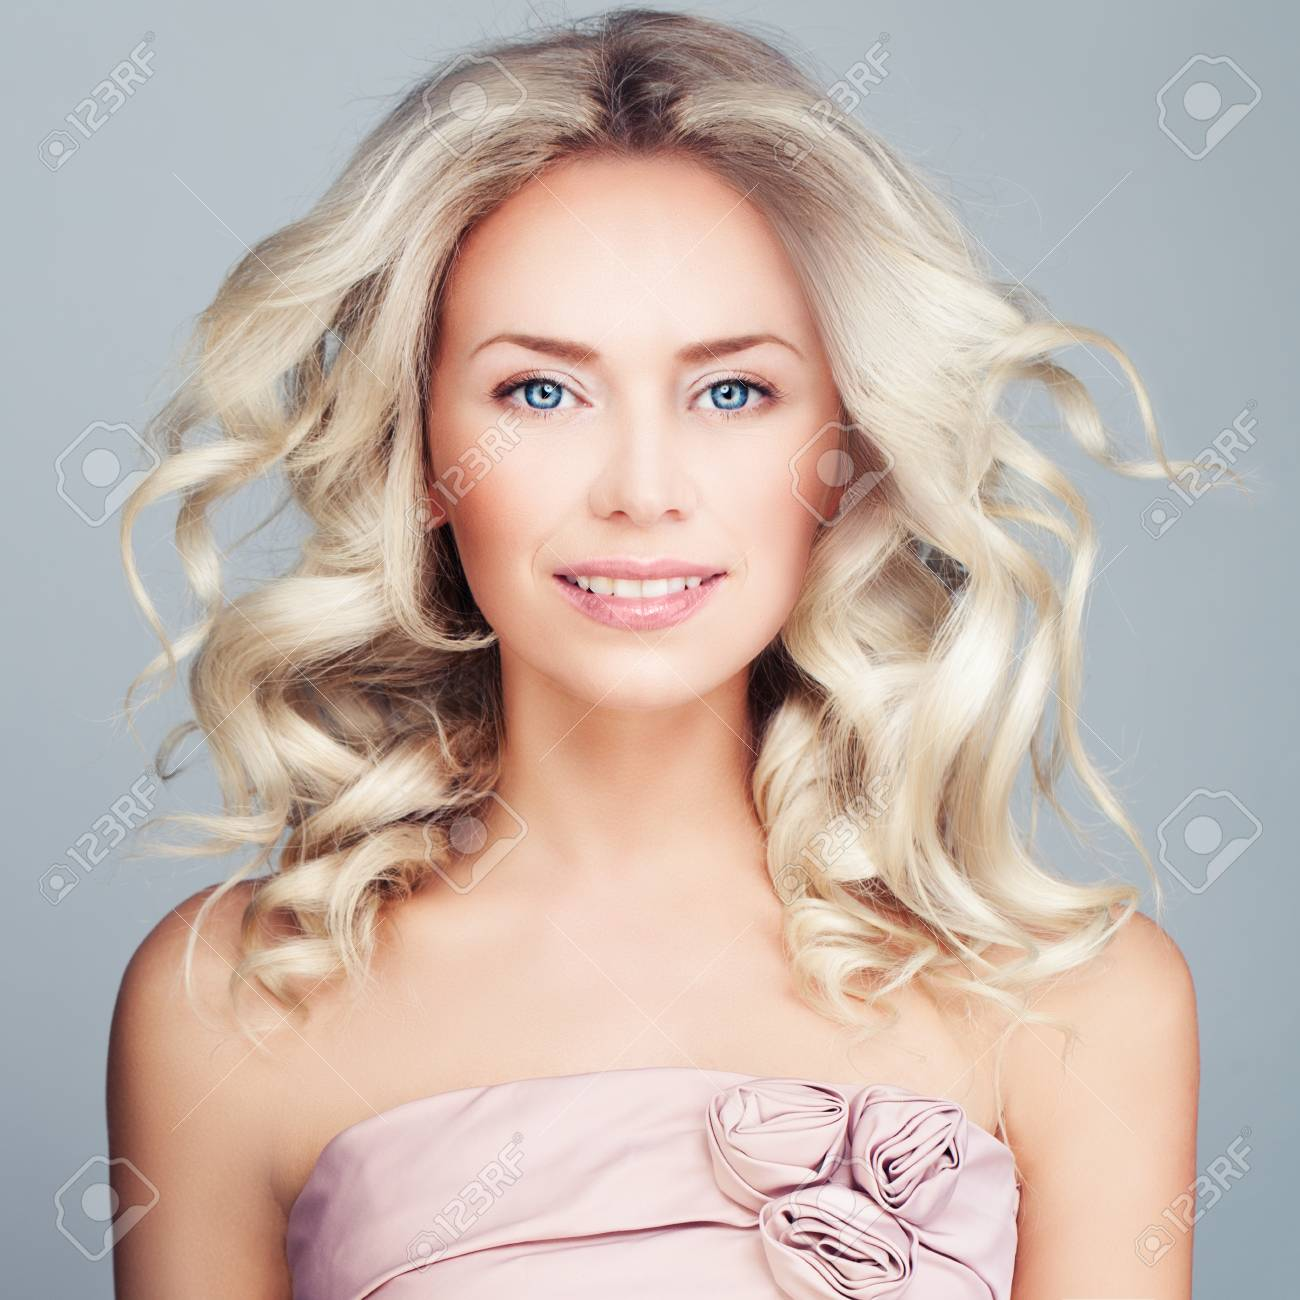 Perfect Blonde Woman With Blowing Curly Hair And Prom Dress Fashion Model Wavy